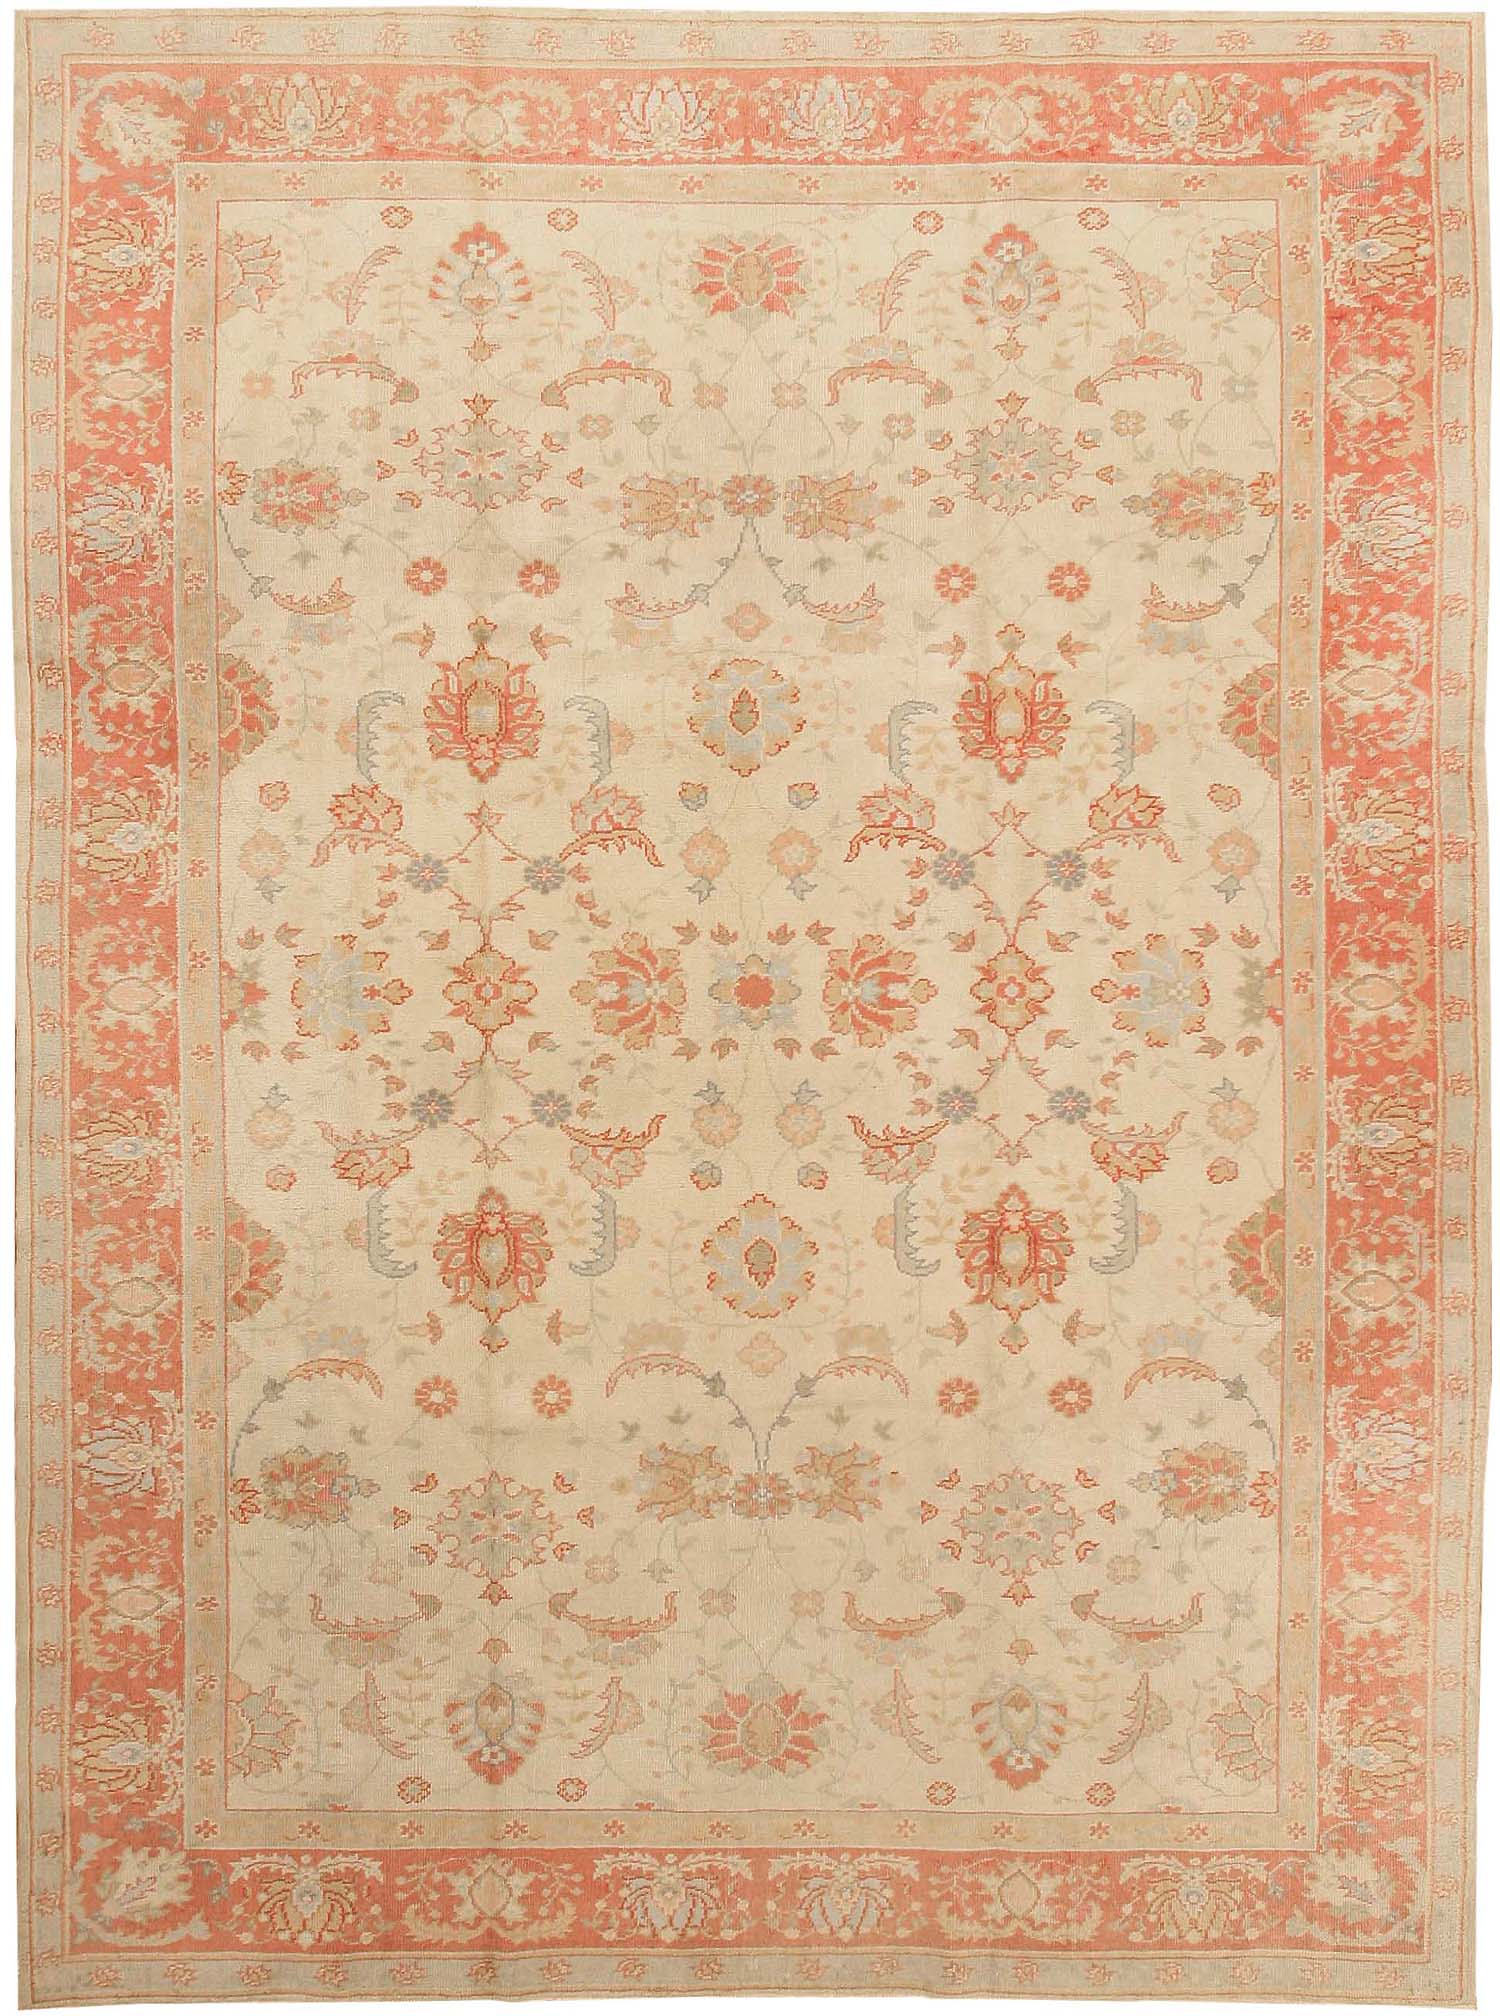 Delightful Woven Over An Elegant Ivory Field, This Extraordinary Carpet Features  Arching Herati Leaves And An All Over Arabesque With Accents In Subtle  Powder Blue And ...